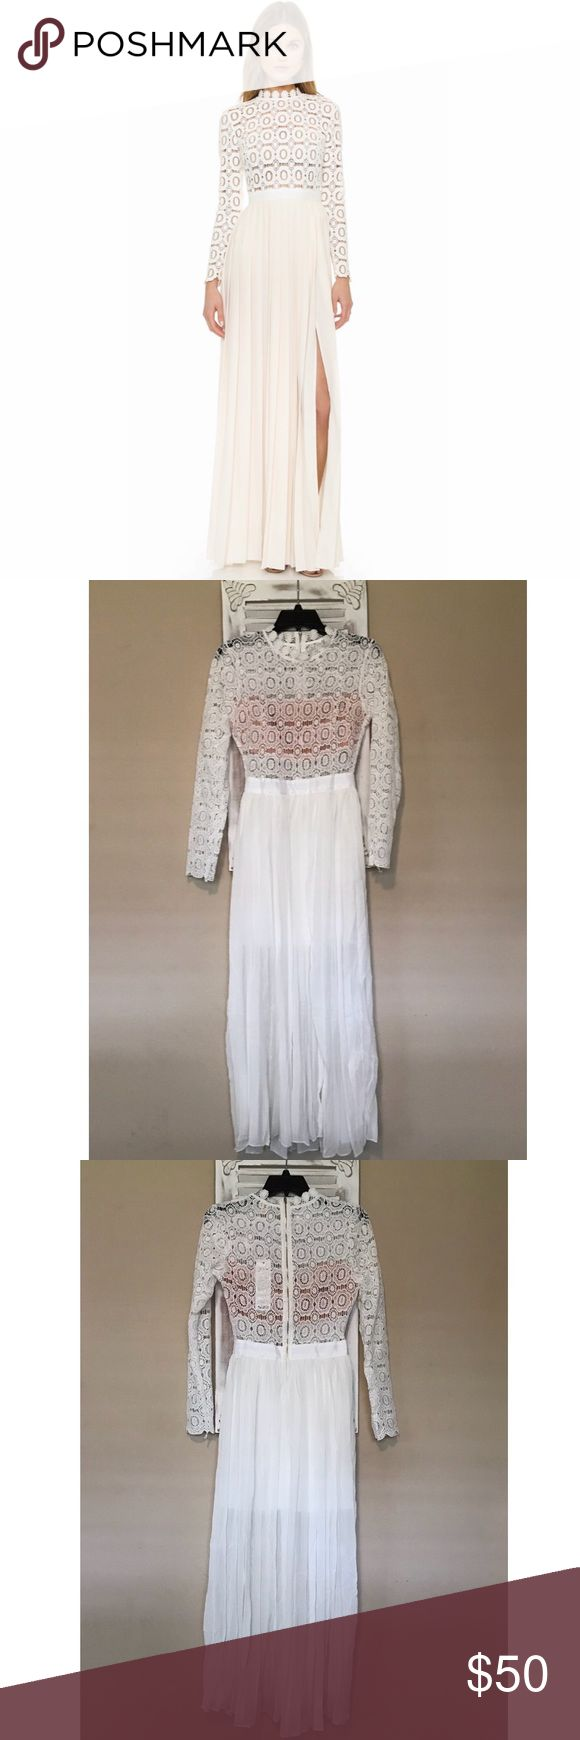 White flower crochet maxi dress White maxi dress with fitted bodice and sheer skirt that flares out. Skirt is partially lined. Self portrait inspired. NWOT. Dresses Maxi